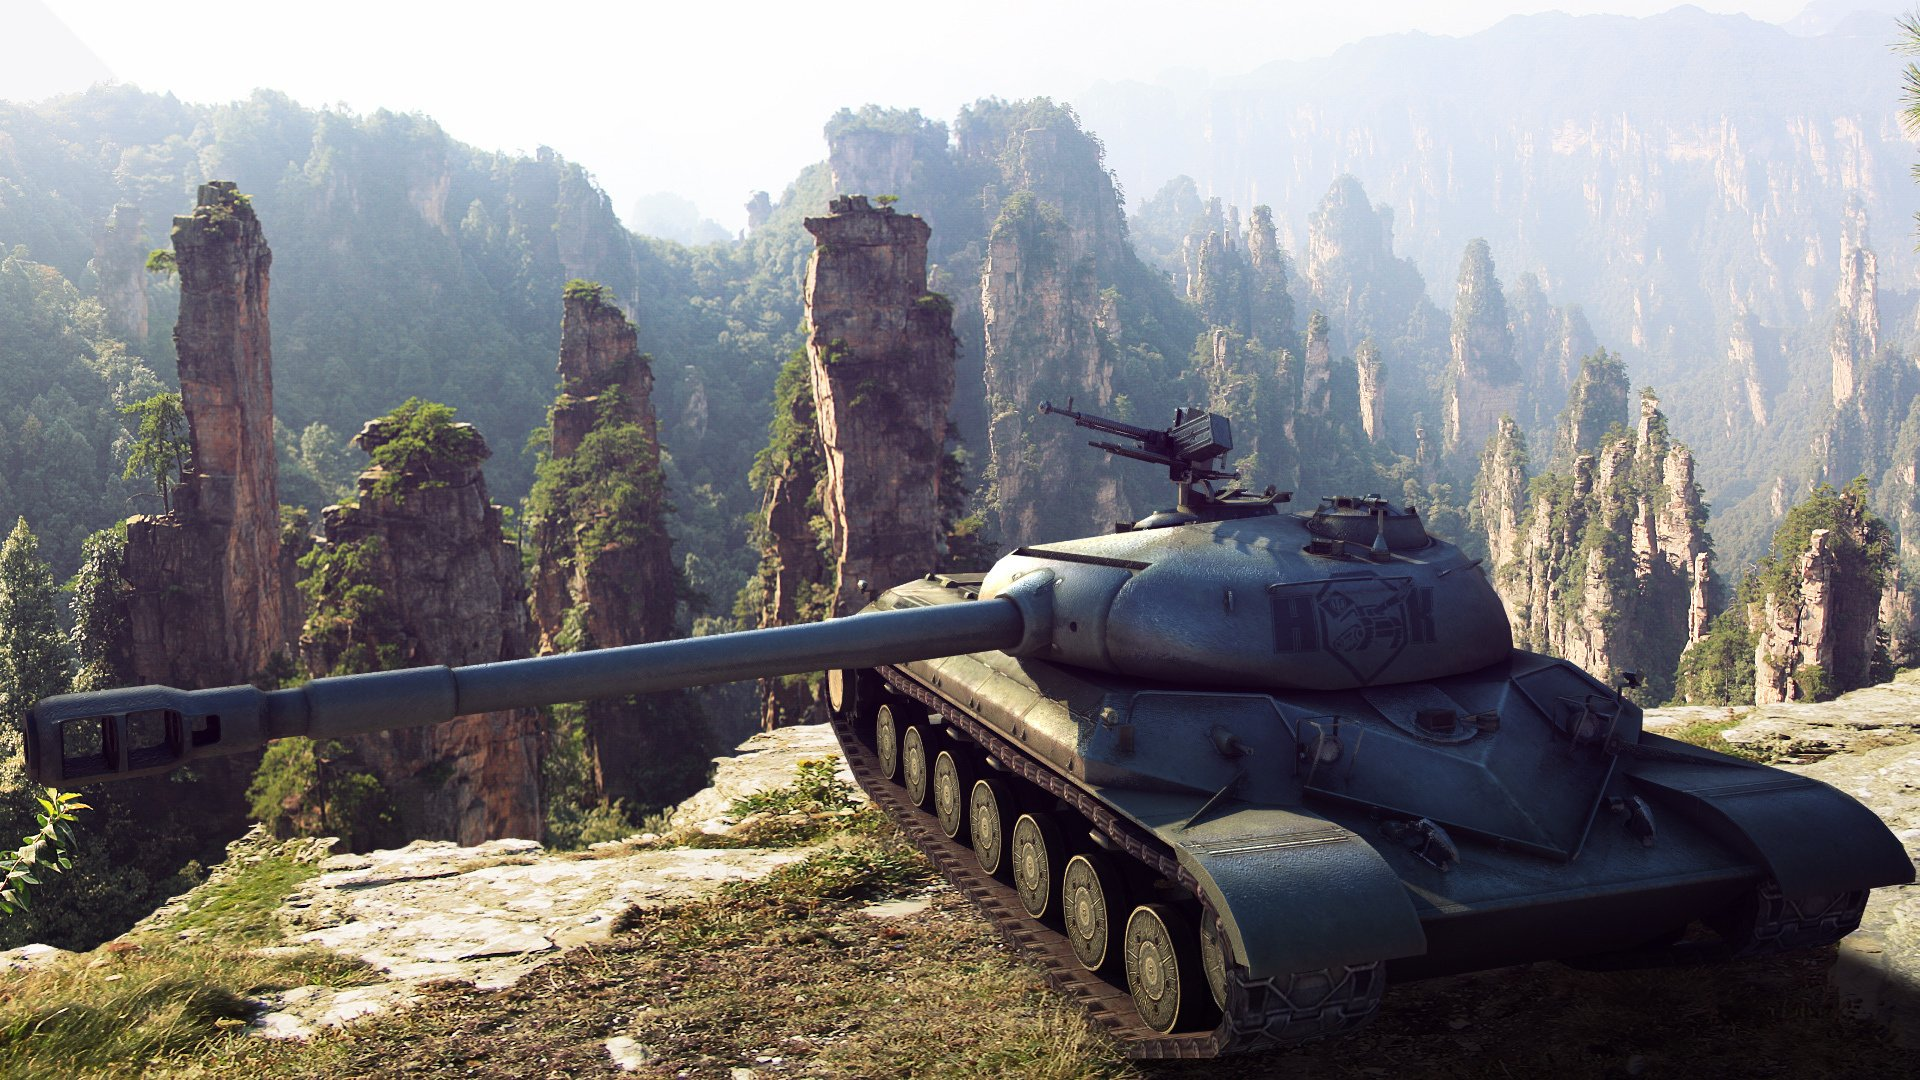 Tank tanks wot world of tanks weapon military wallpaper | 1920x1080 ...